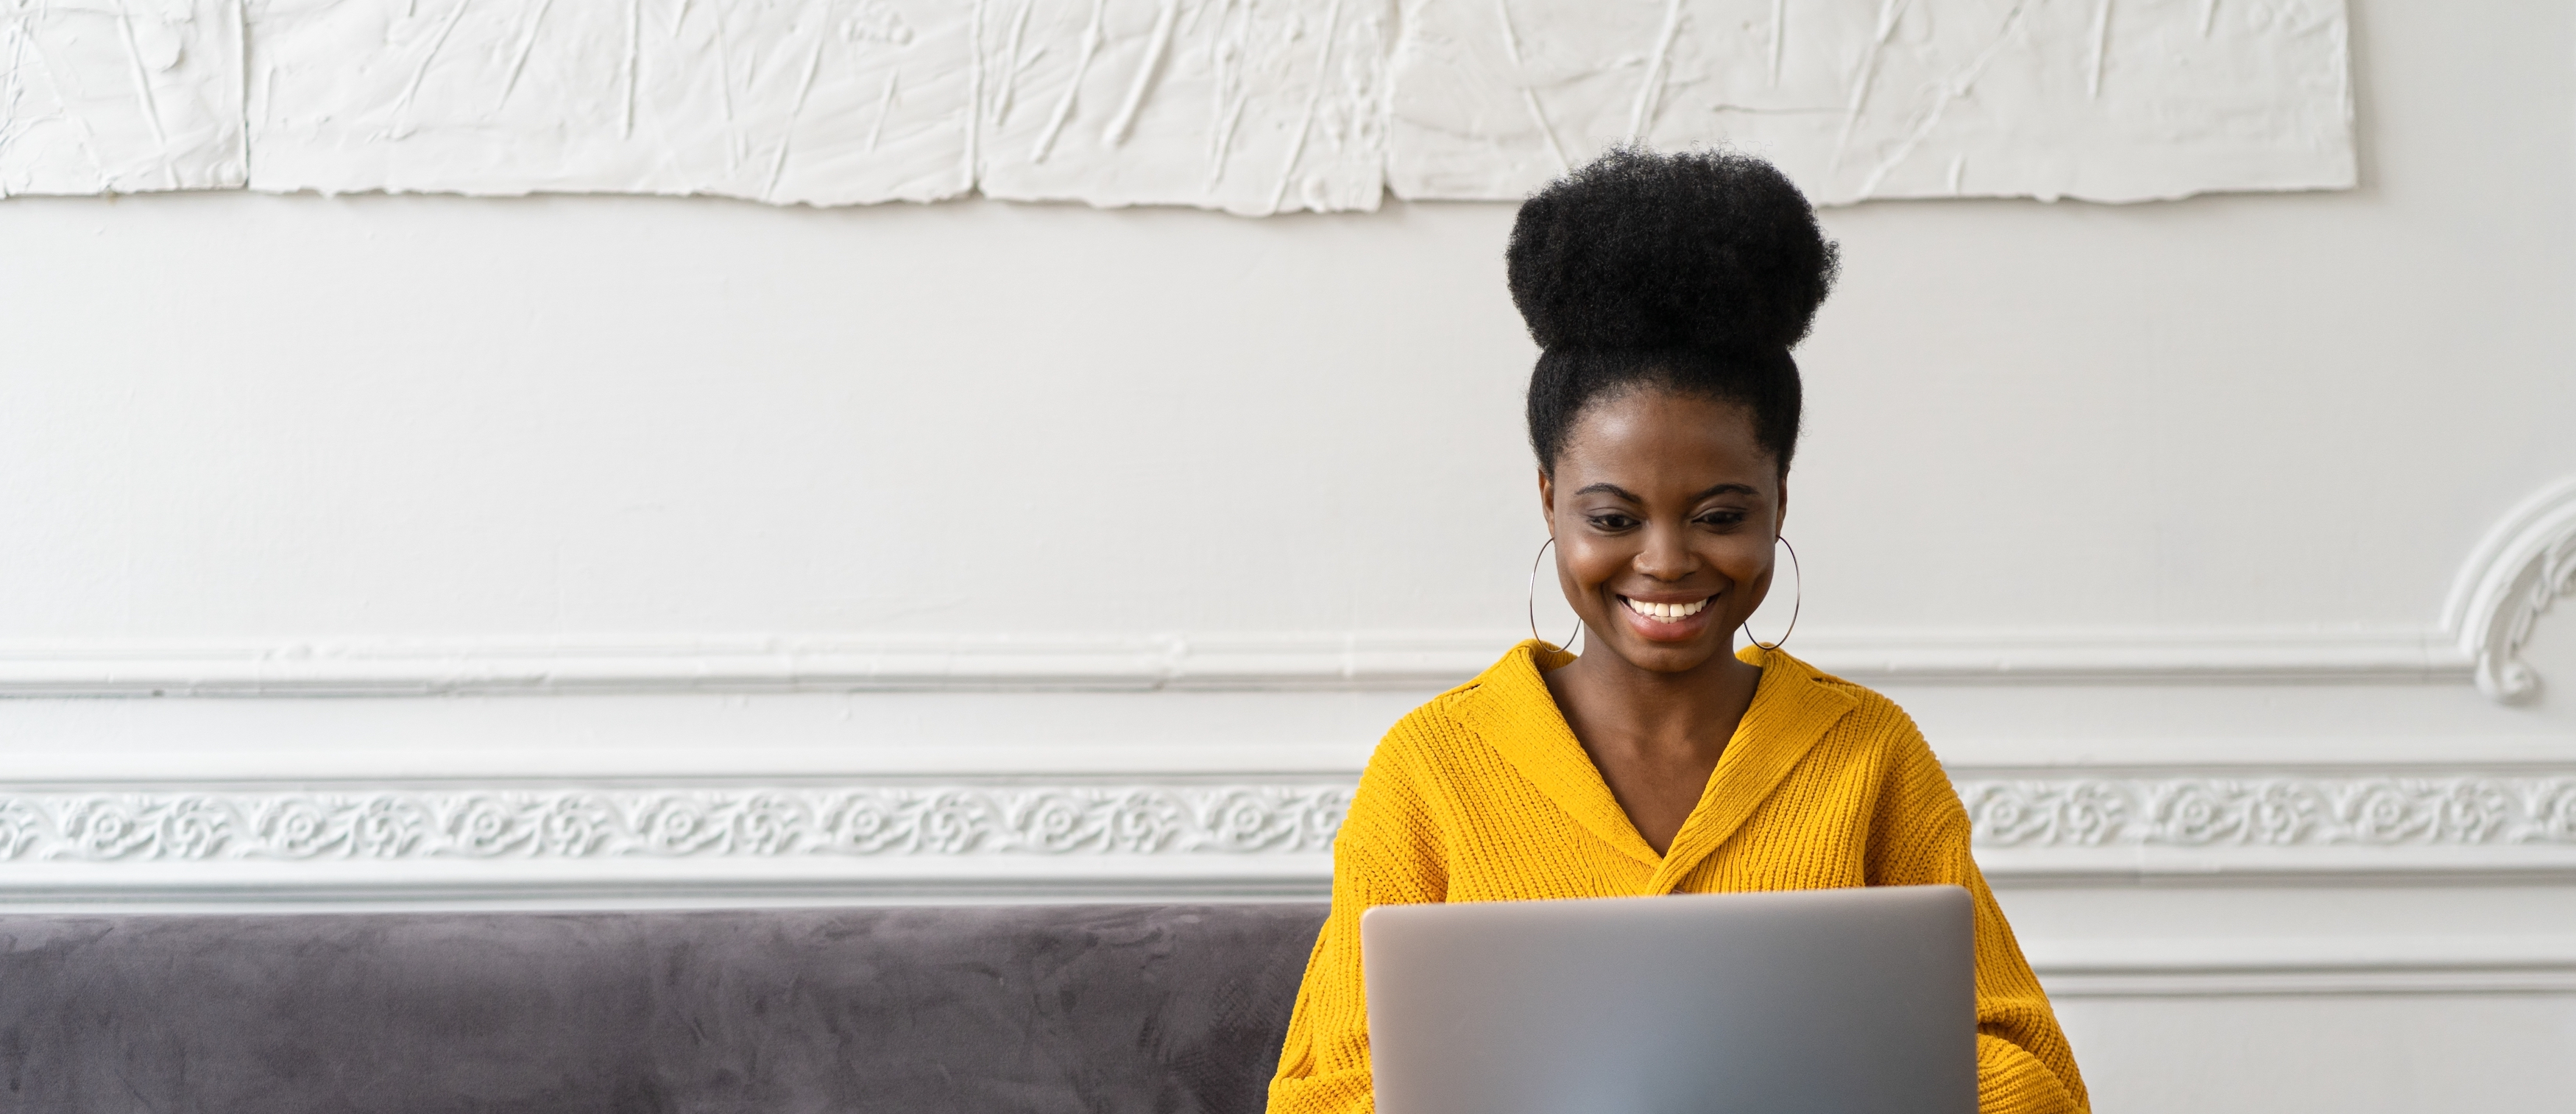 smiling-african-american-millennial-woman-with-afro-hairstyle-wear-yellow-cardigan-sitting-on-sofa_t20_LlnRLo